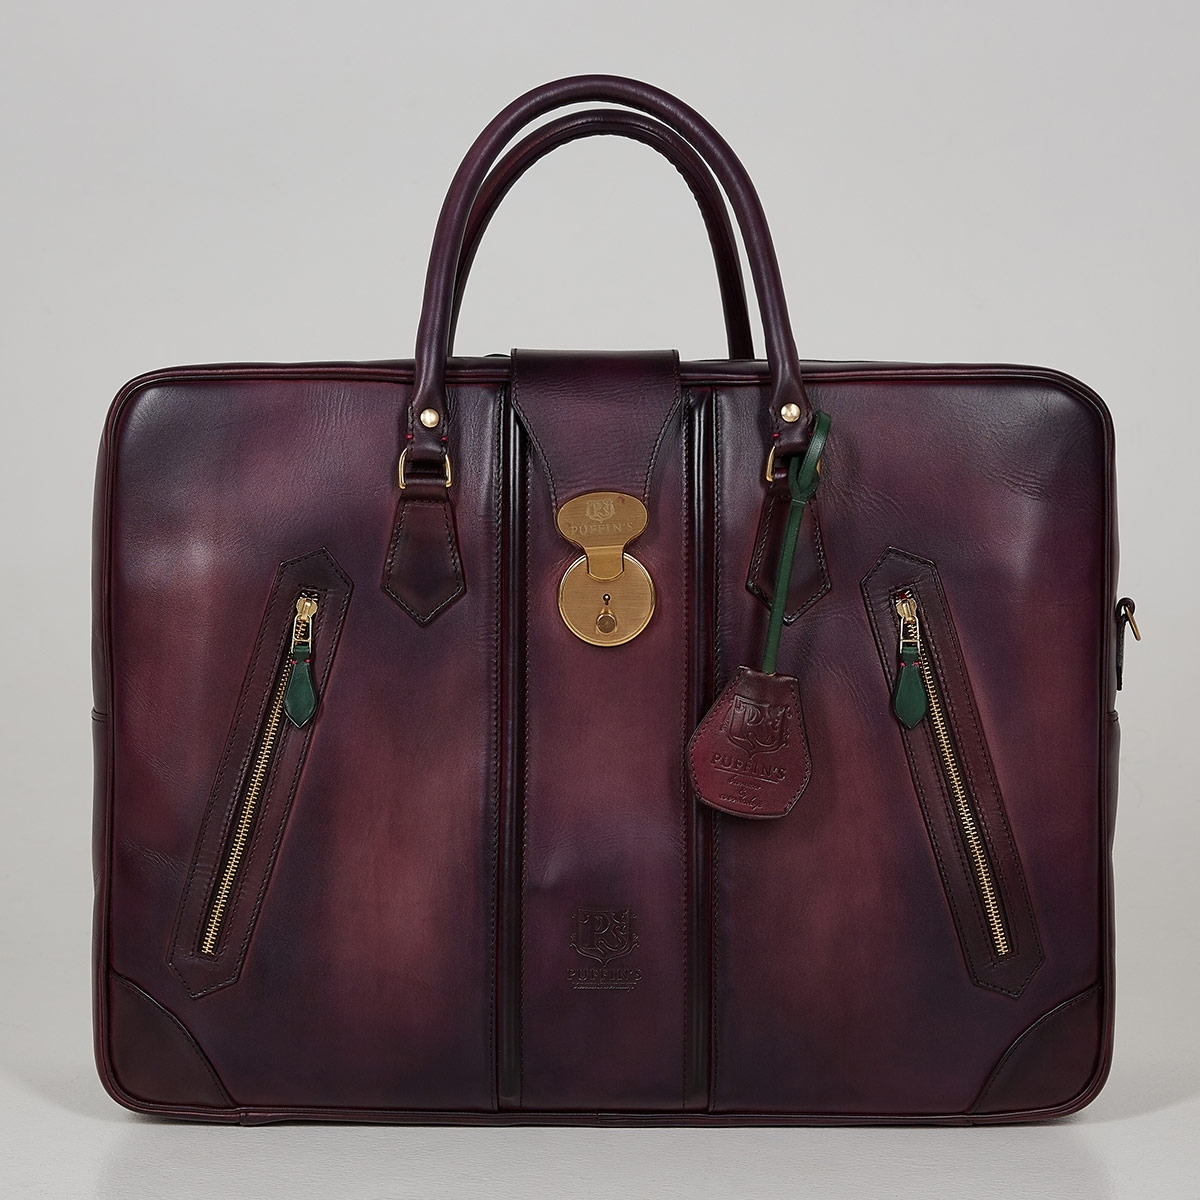 Leather suitcase HOLIDAY plum wine